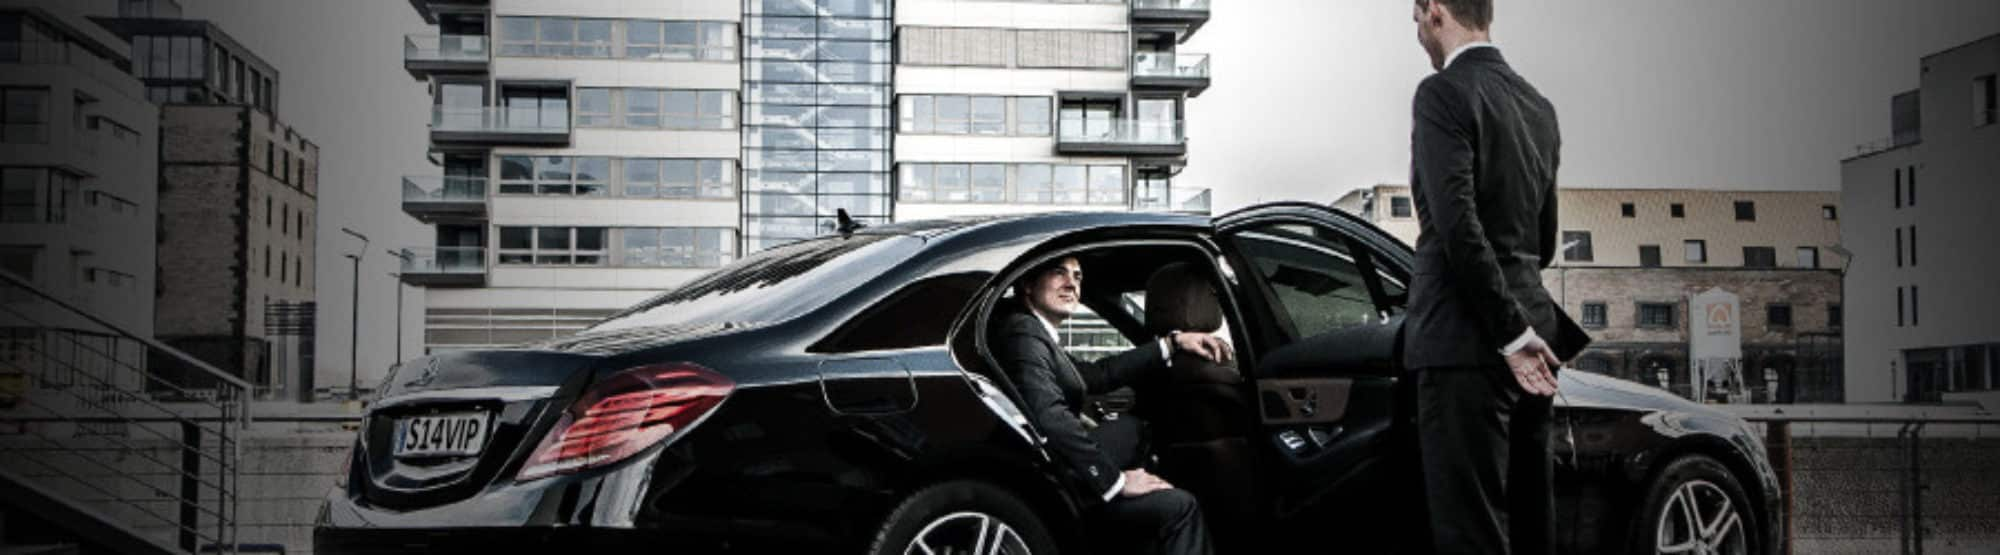 Advantages Of Using Airport Taxis